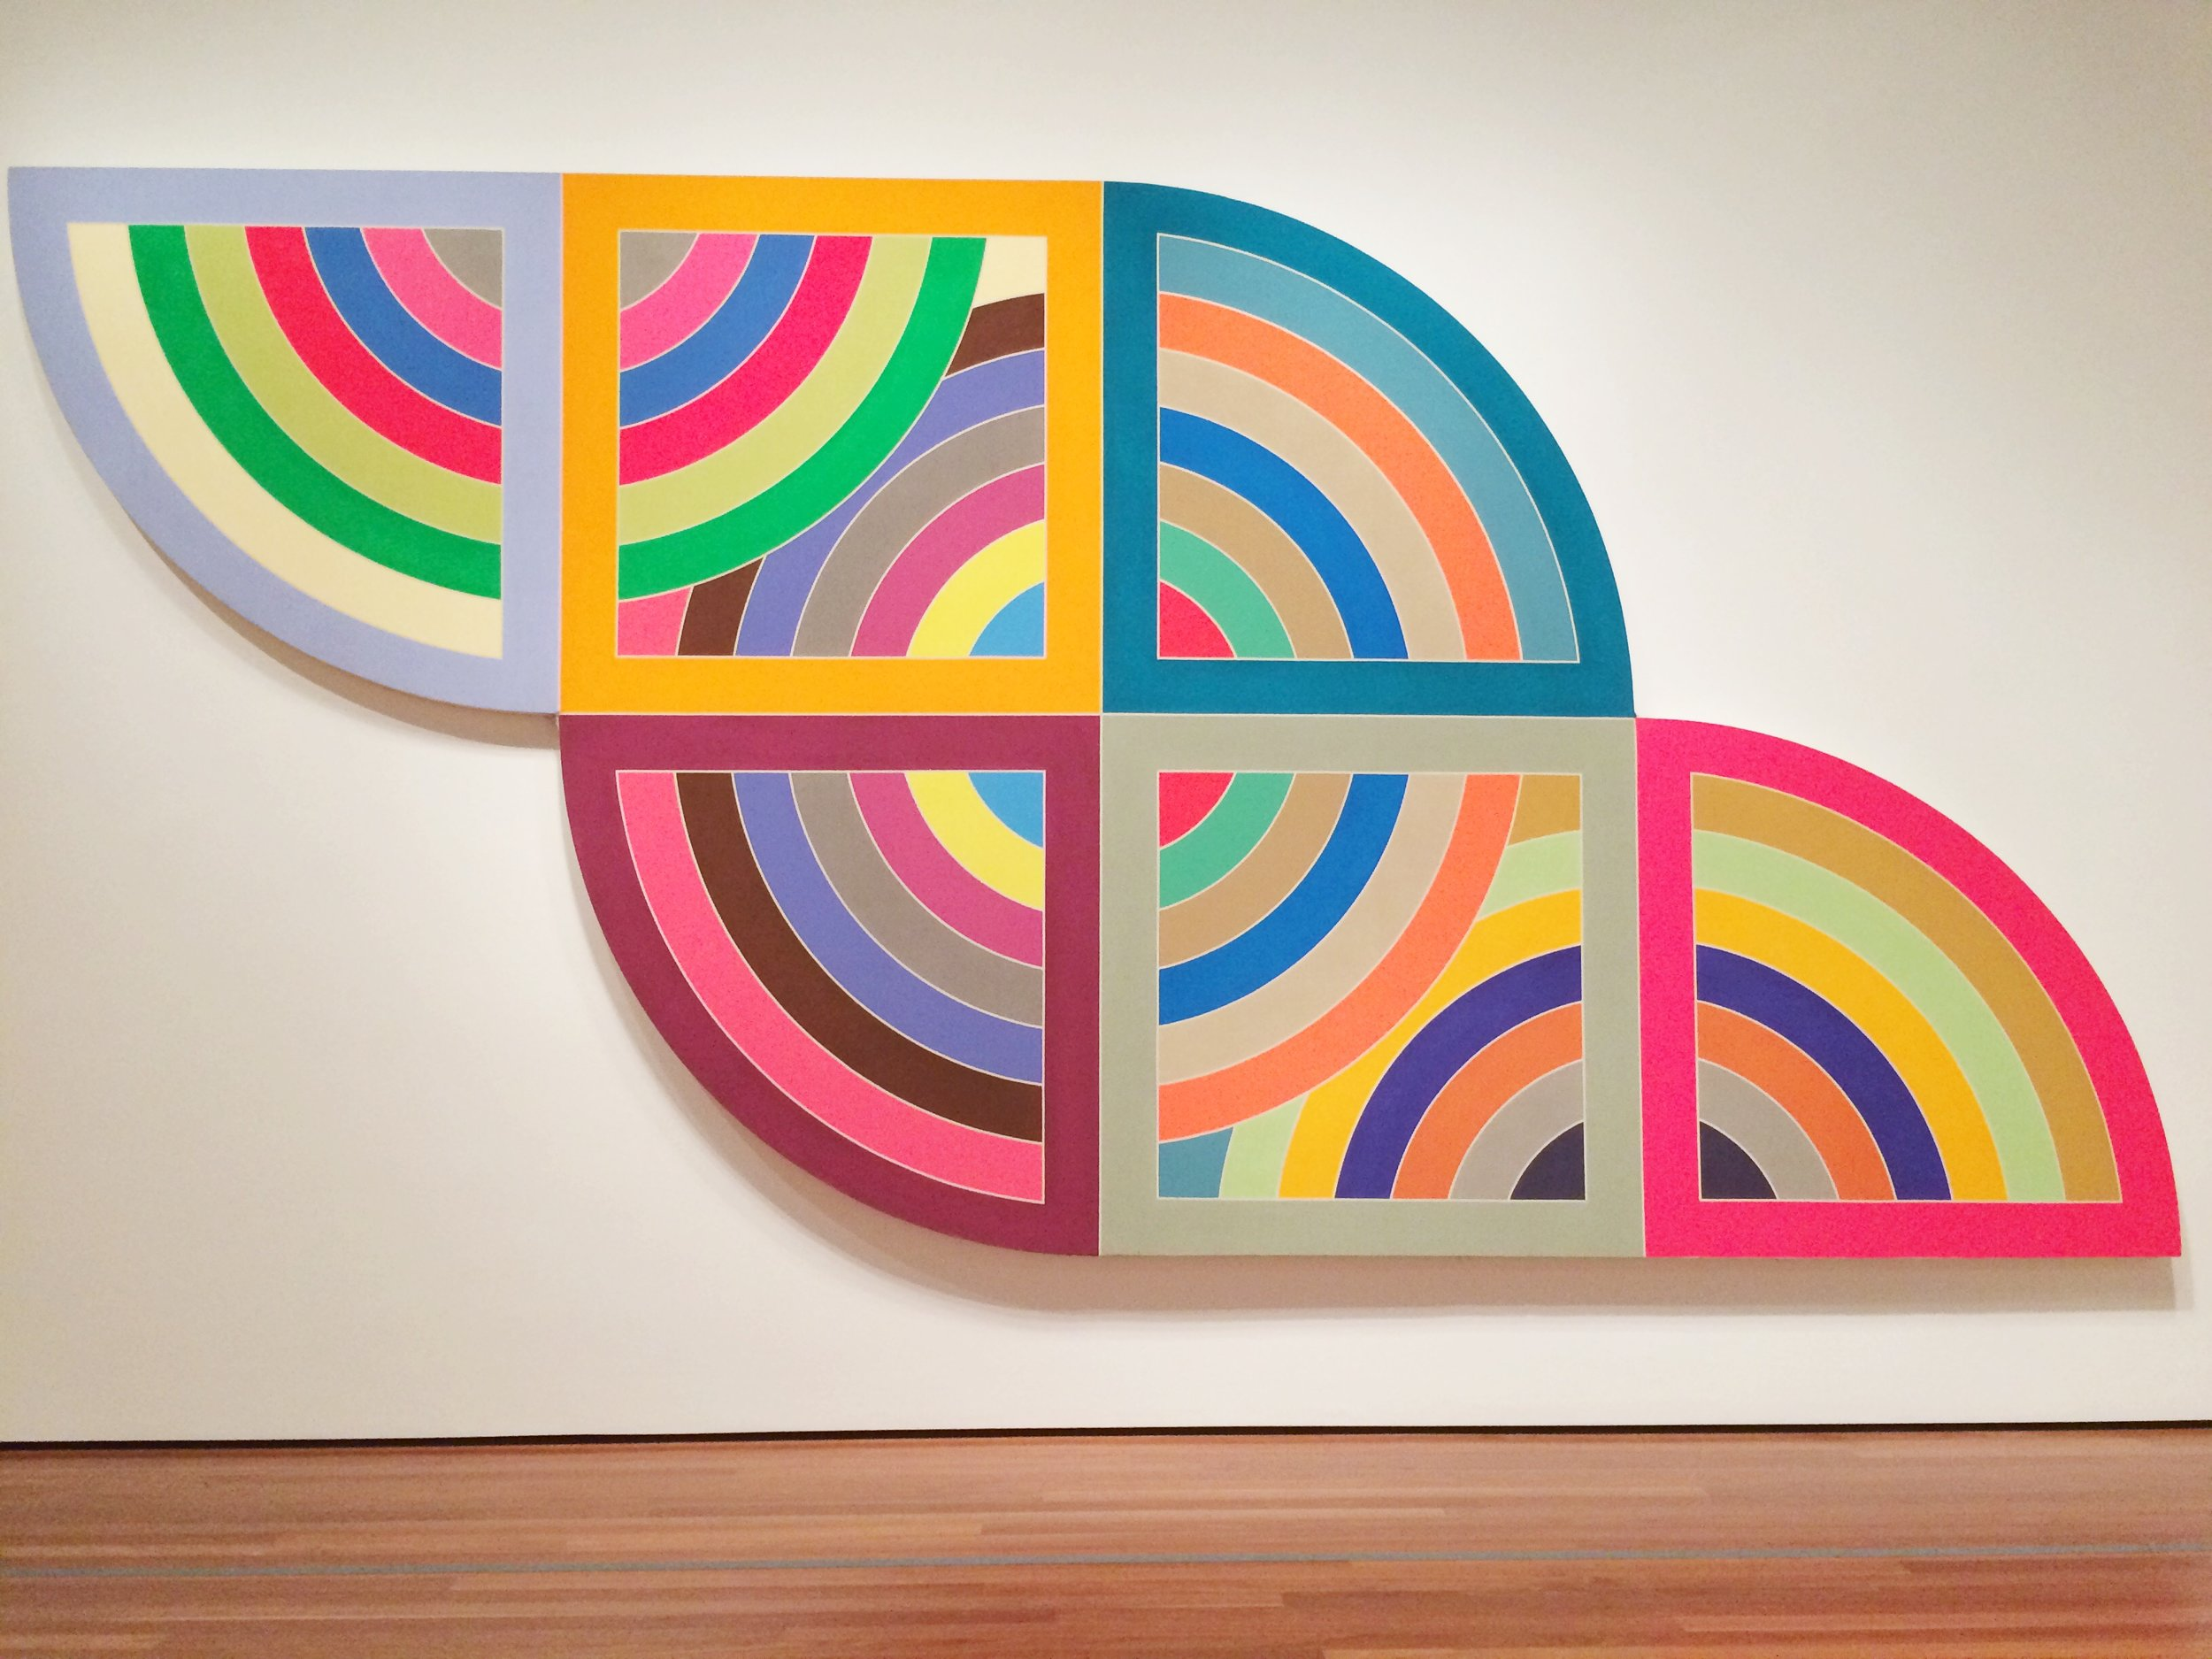 Frank Stella,  Harran II , 1967, from Frank Stella: A Retrospective at the de Young Museum